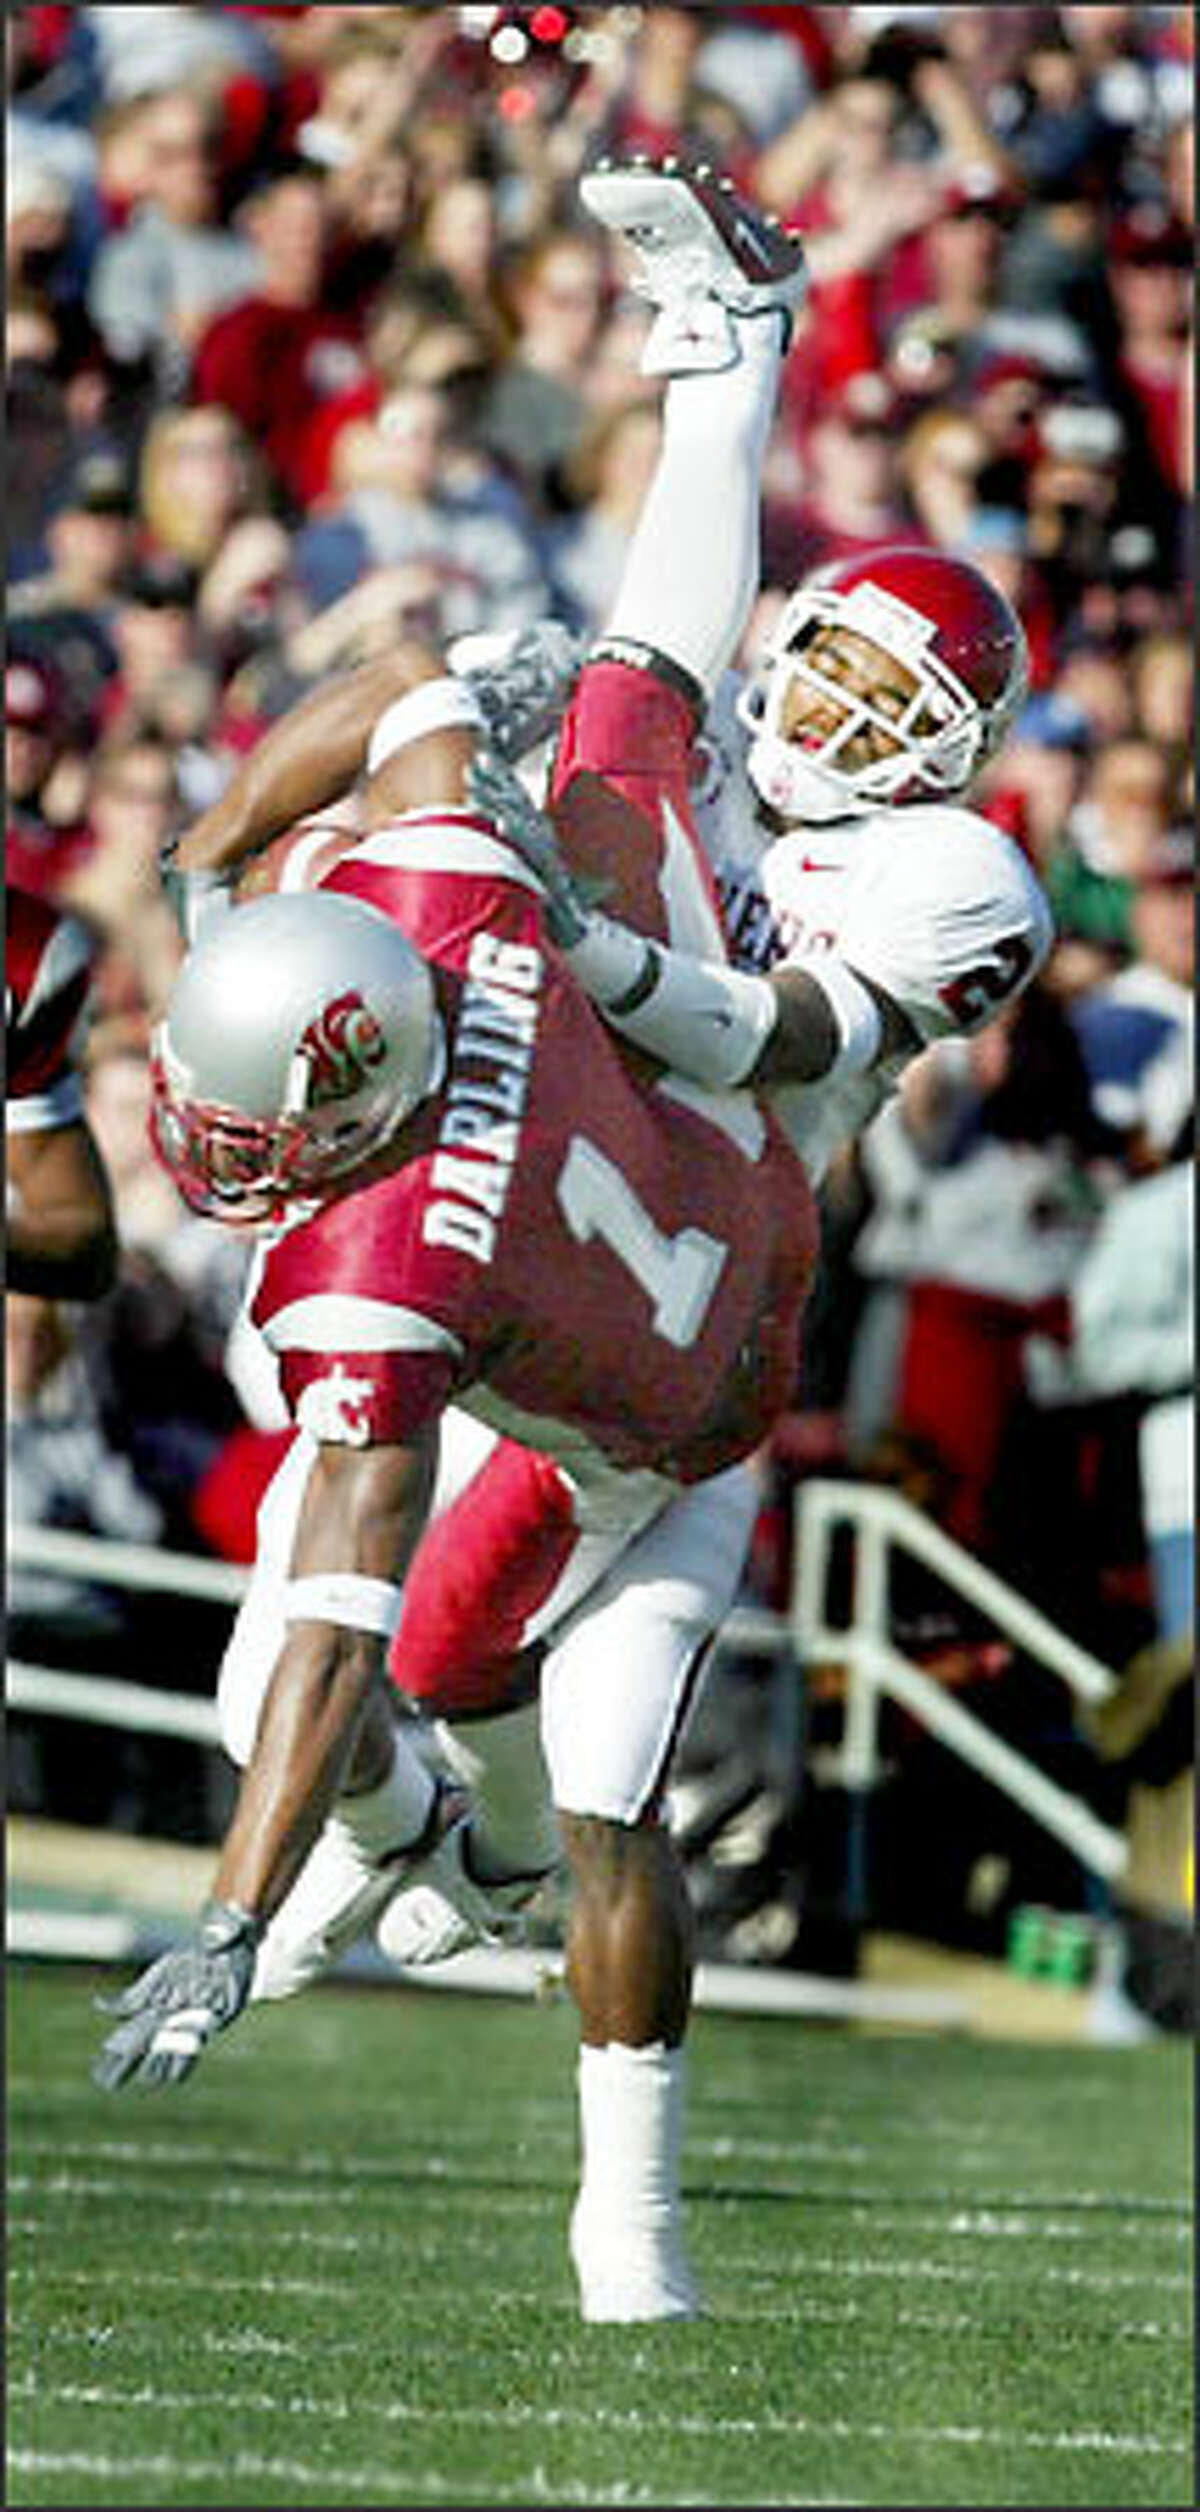 WSU's Devard Darling, who caught five passes for 75 yards, is upended by Oklahoma cornerback Derrick Strait.